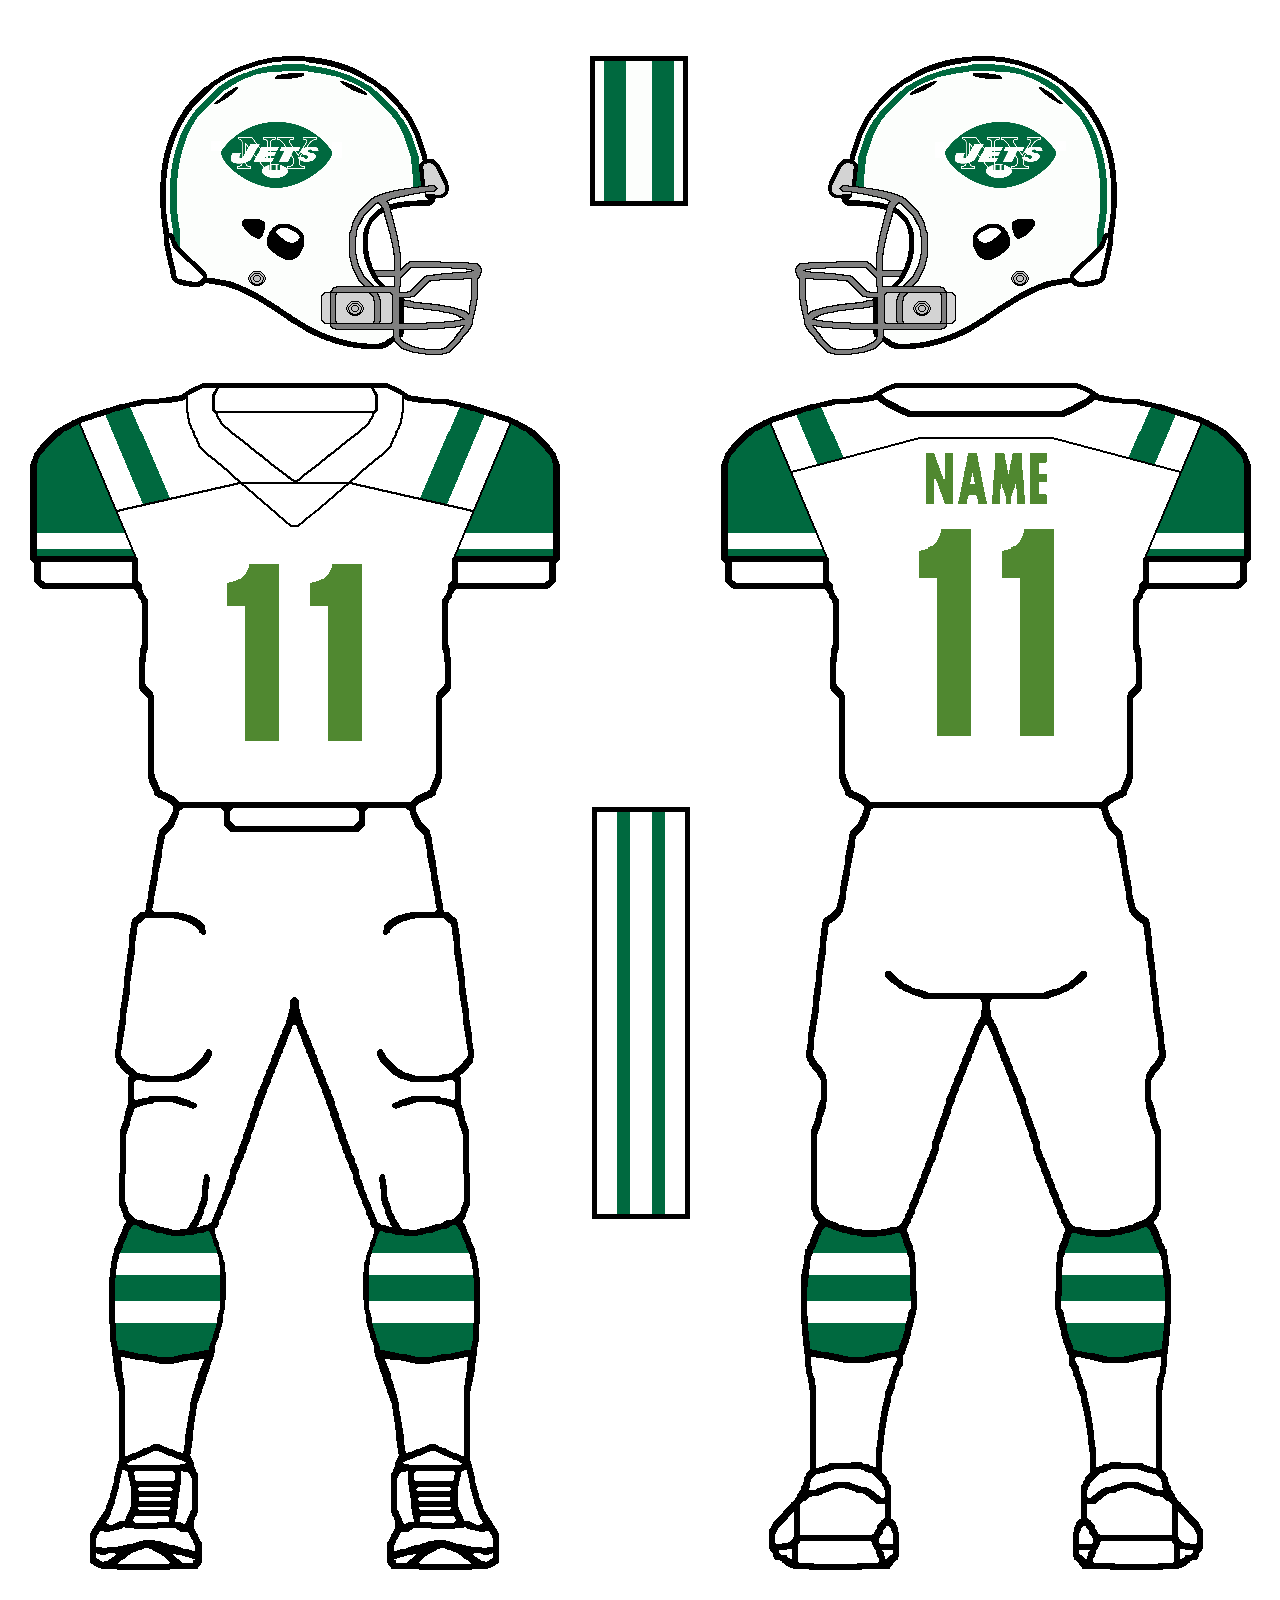 JETS_1968_AWAY.png